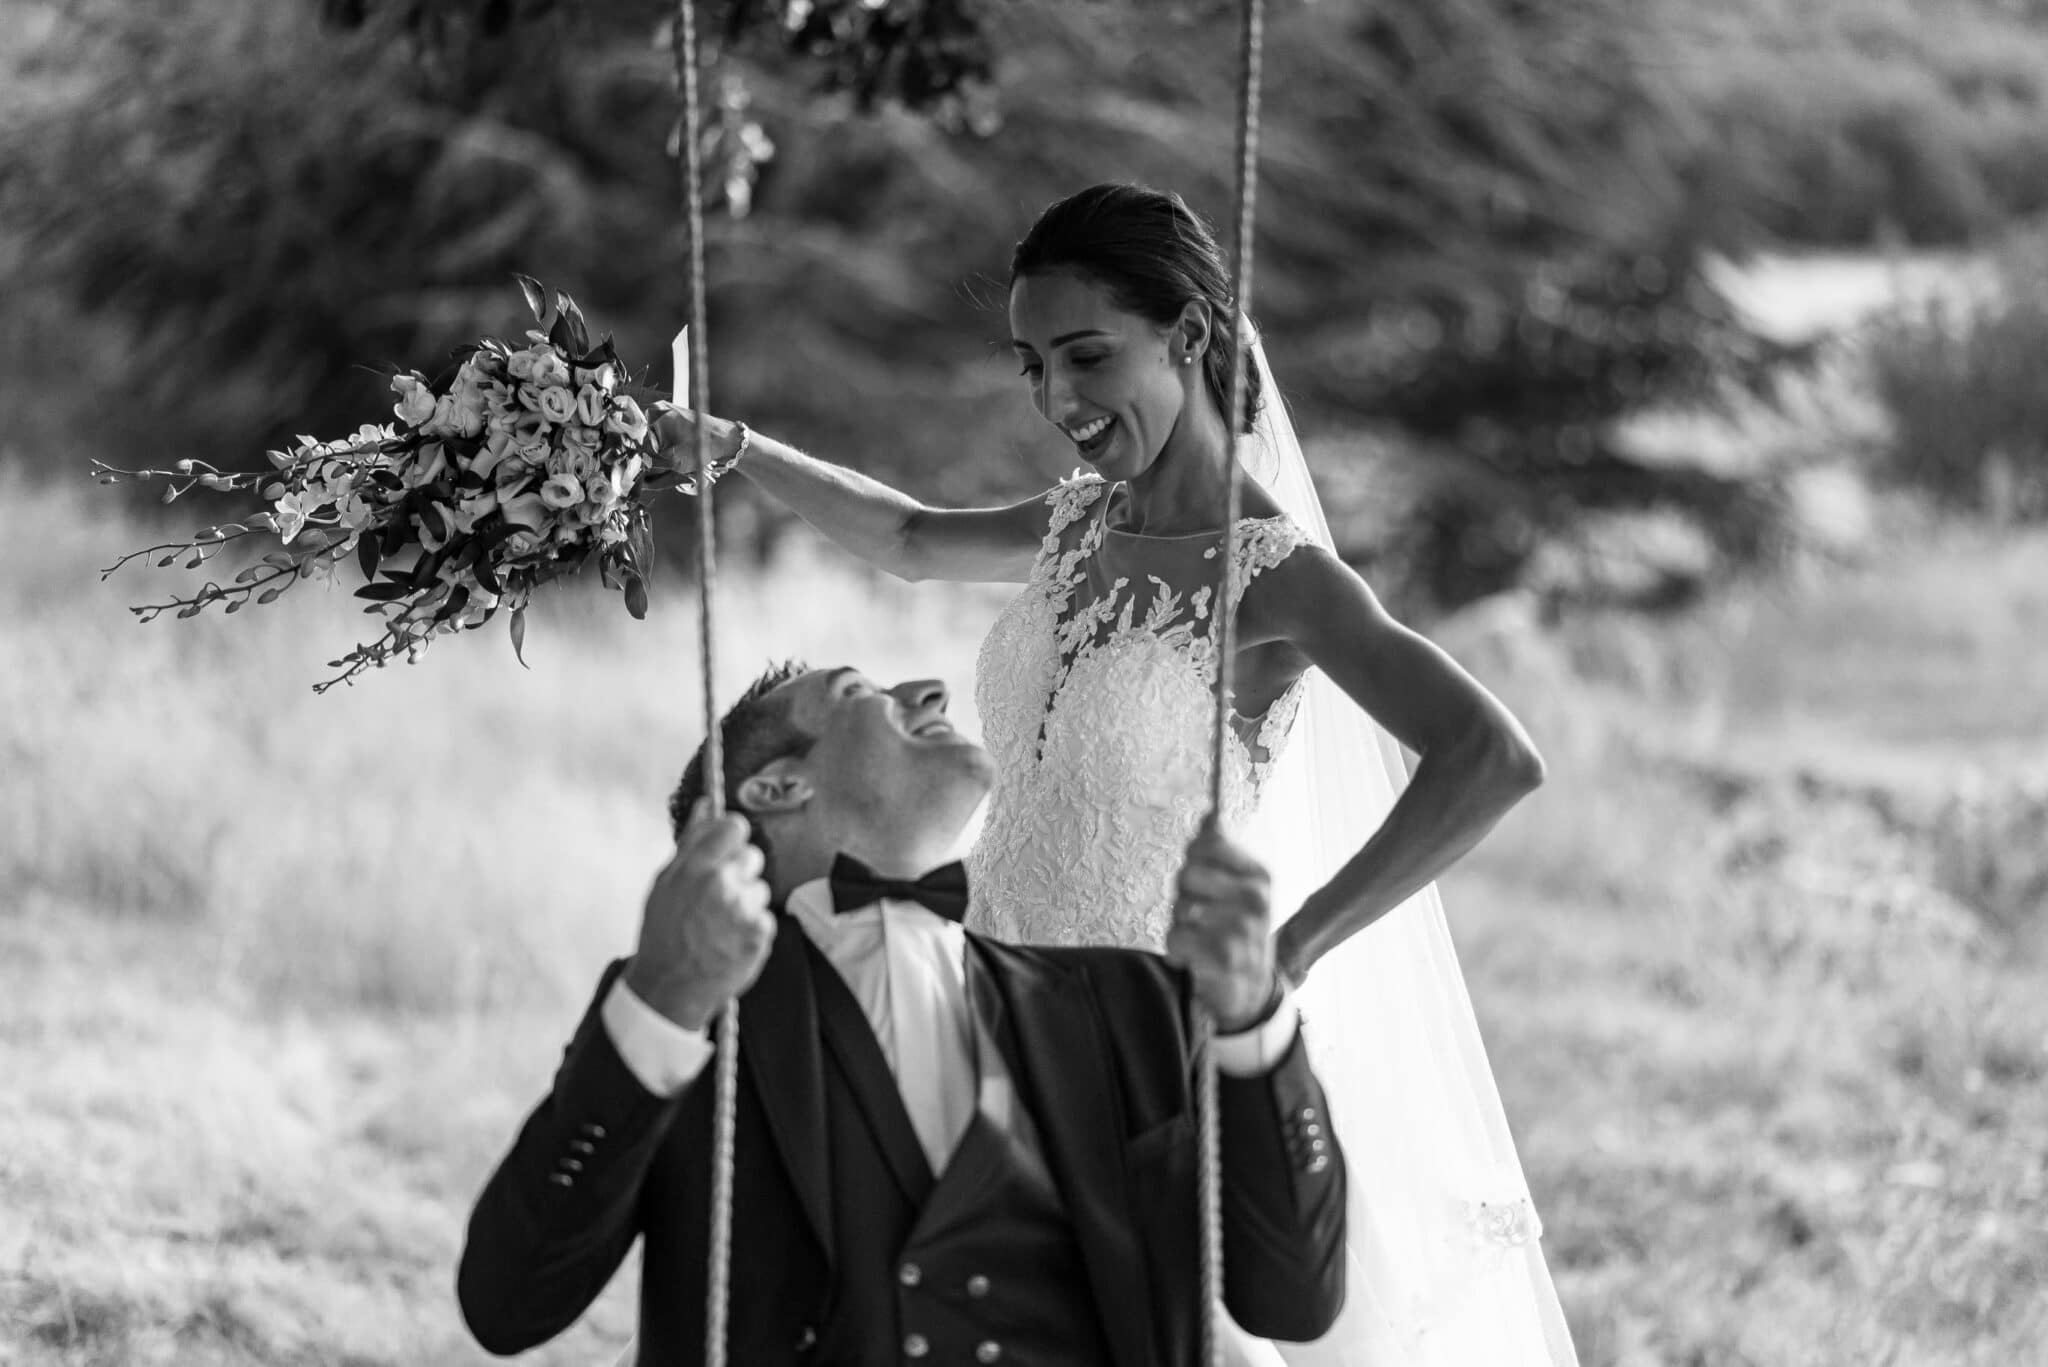 The newlyweds play on the swing